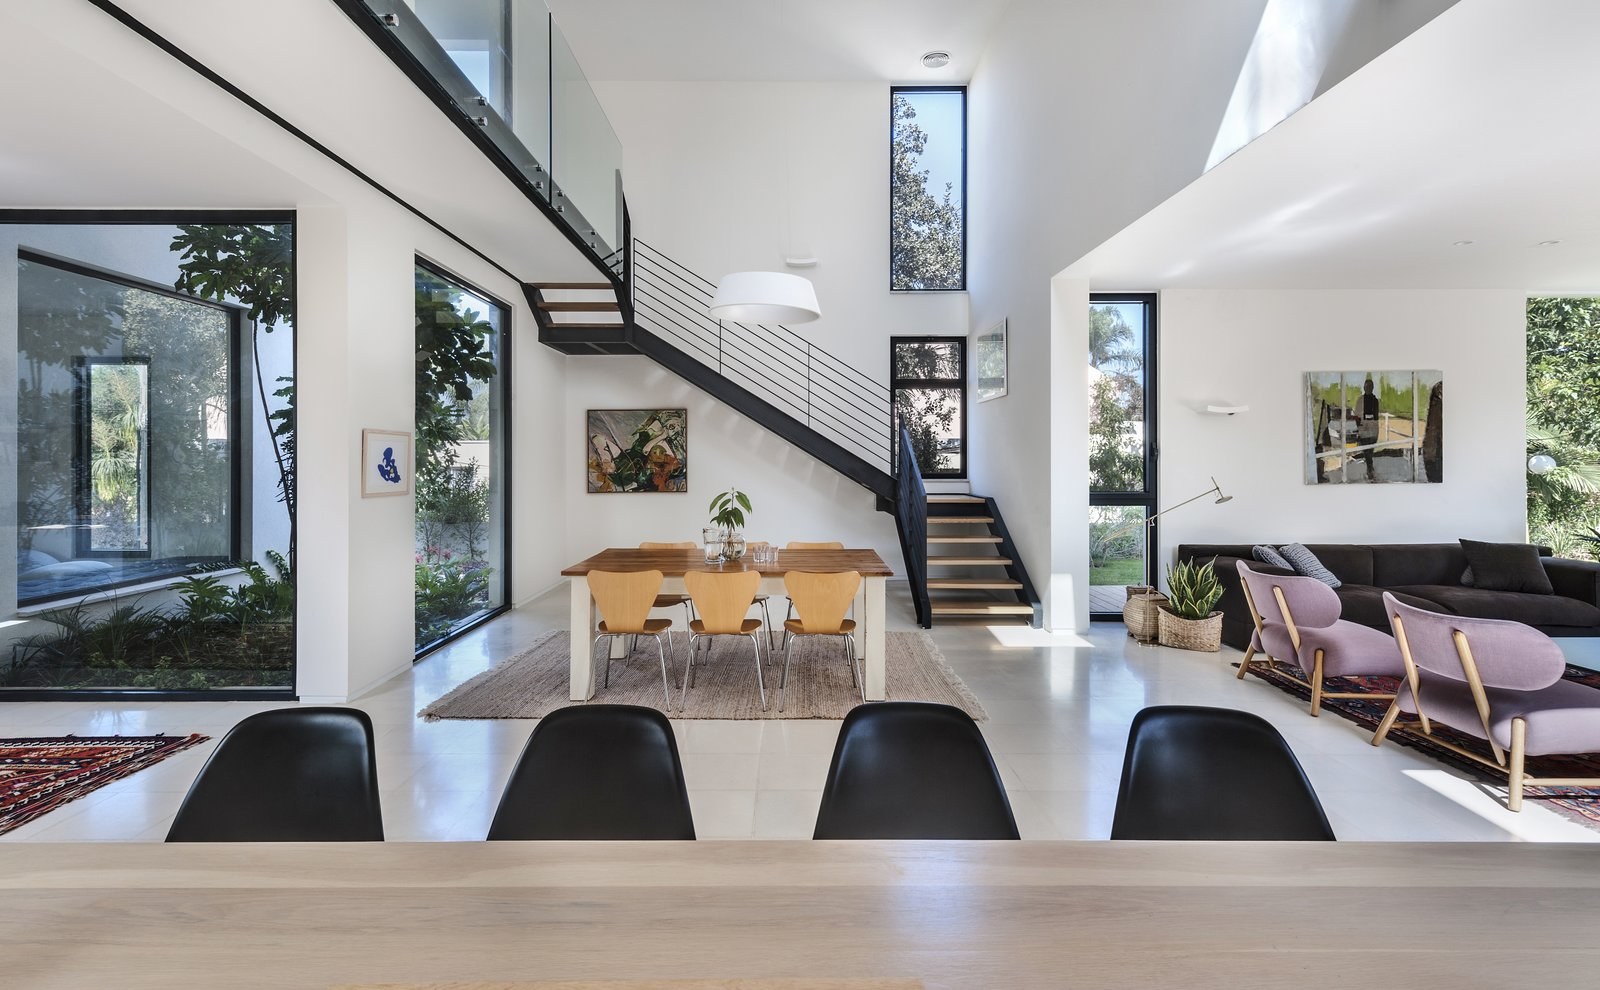 Staircase, Wood Tread, Metal Tread, and Metal Railing Ravit Dvir Architecture and Design  The House in Harutzim